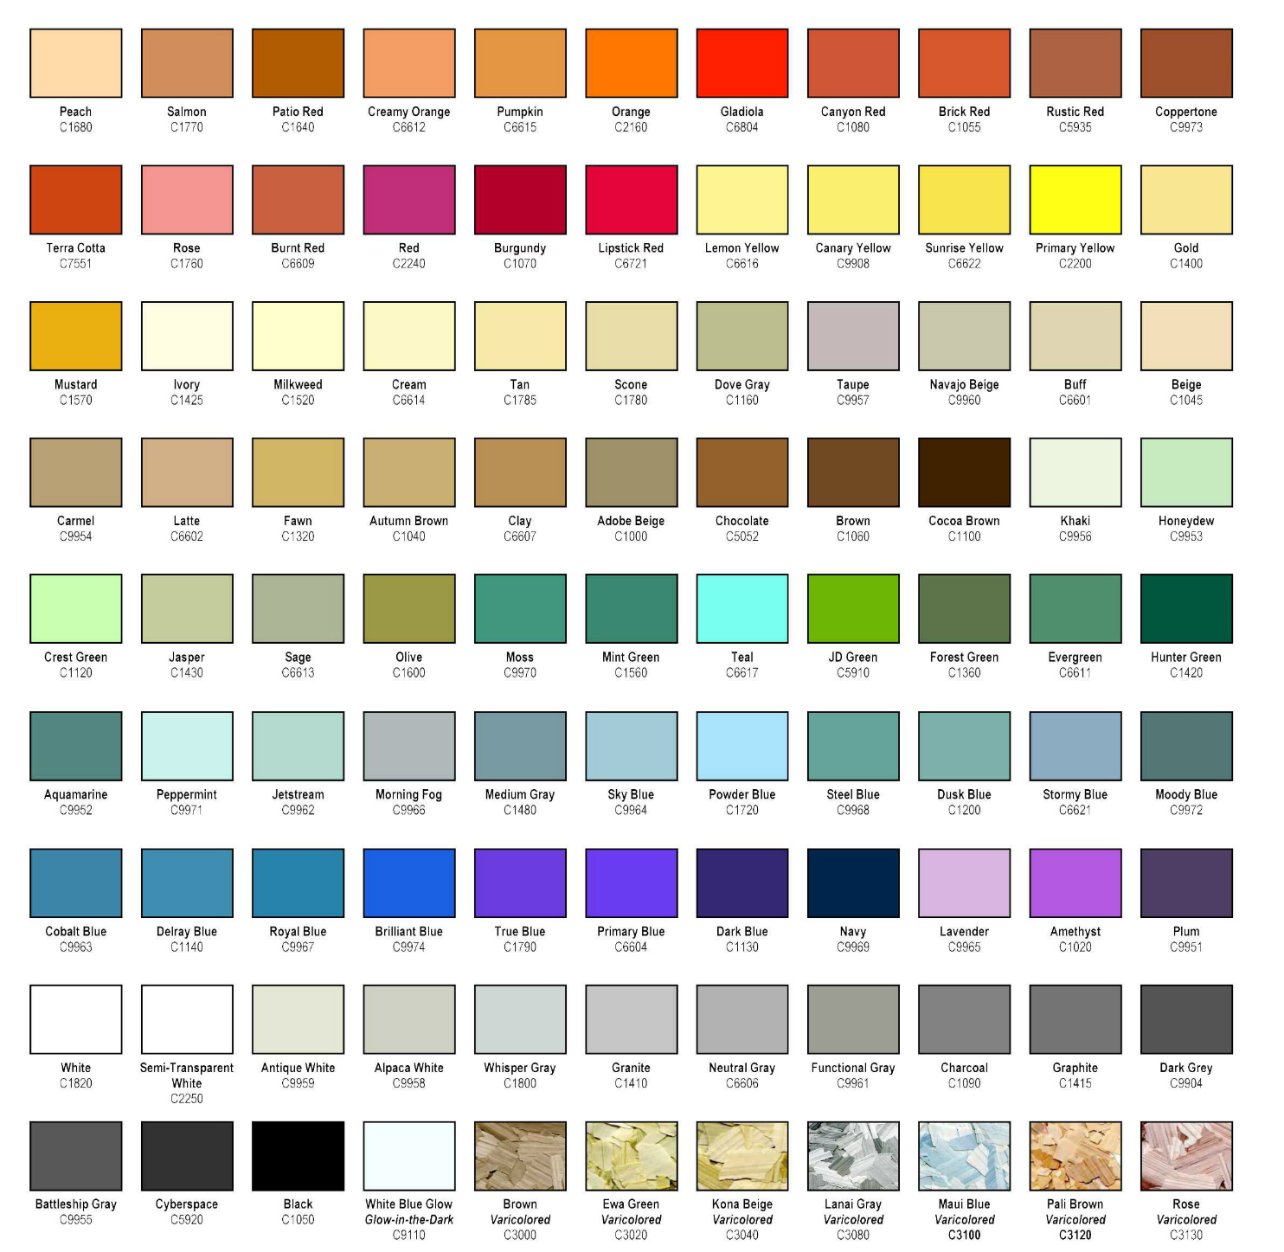 Subaru Paint Color Codes